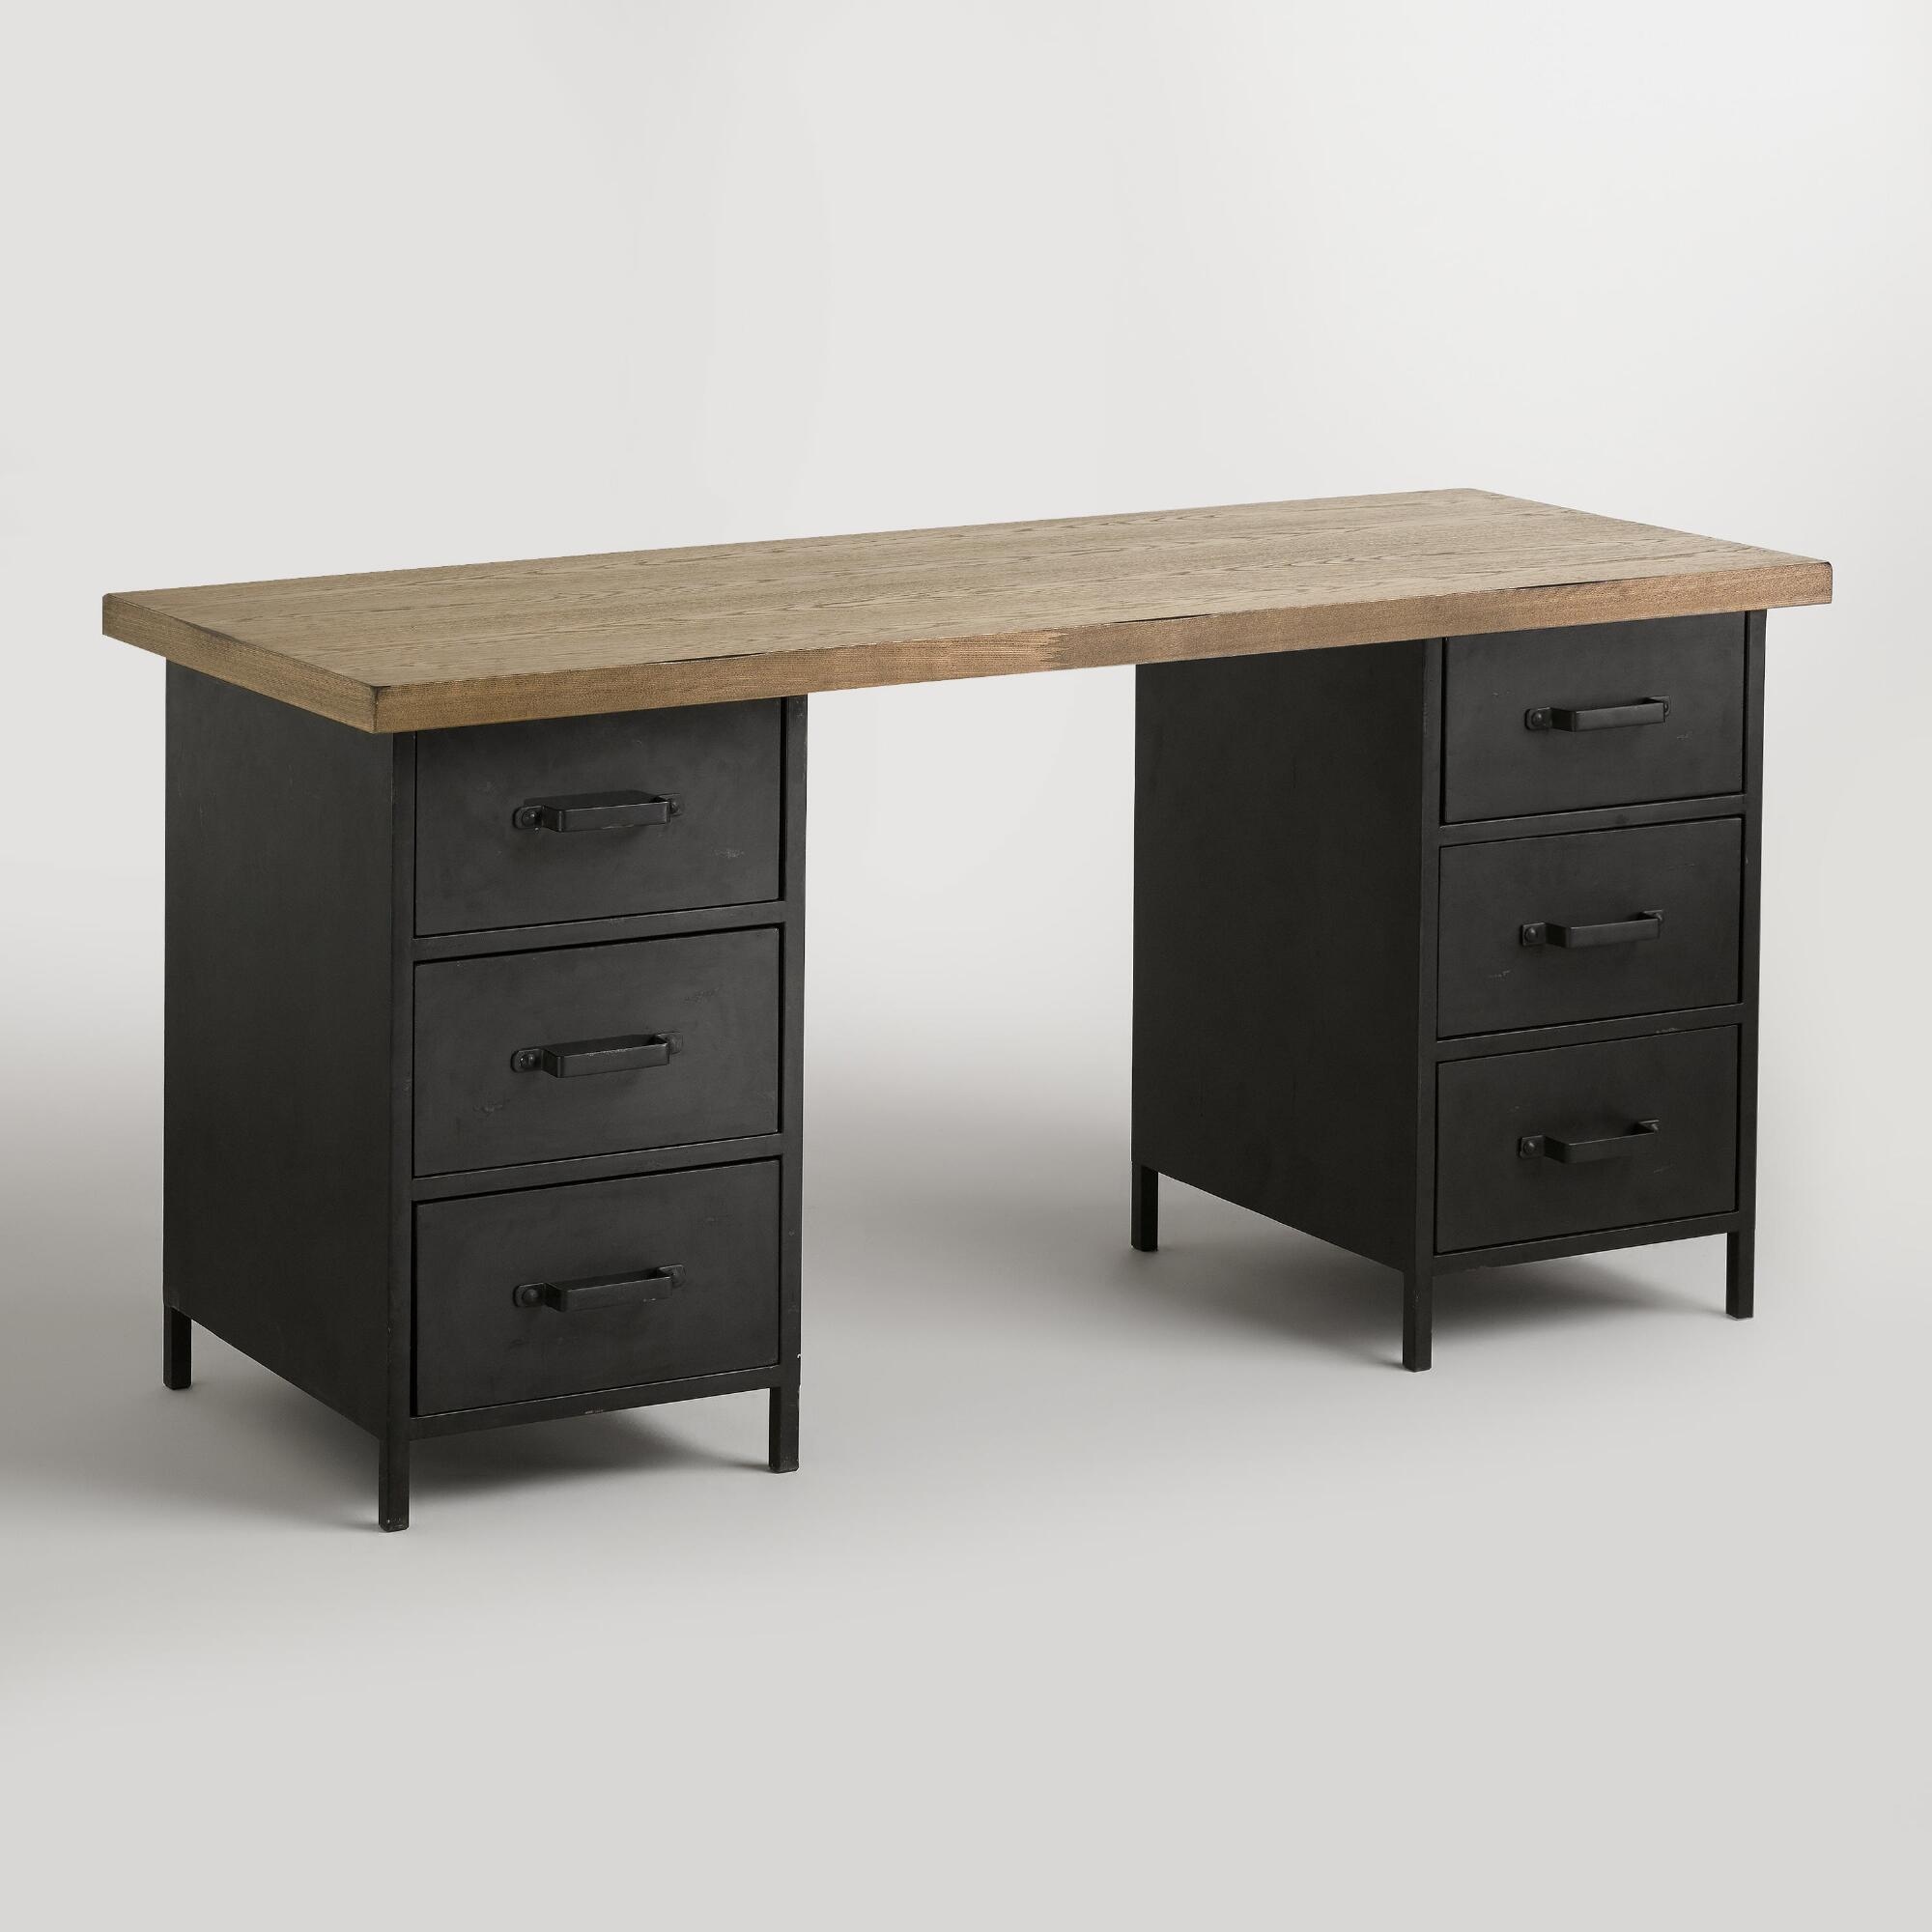 Natural wood and metal drawer colton mix match desk